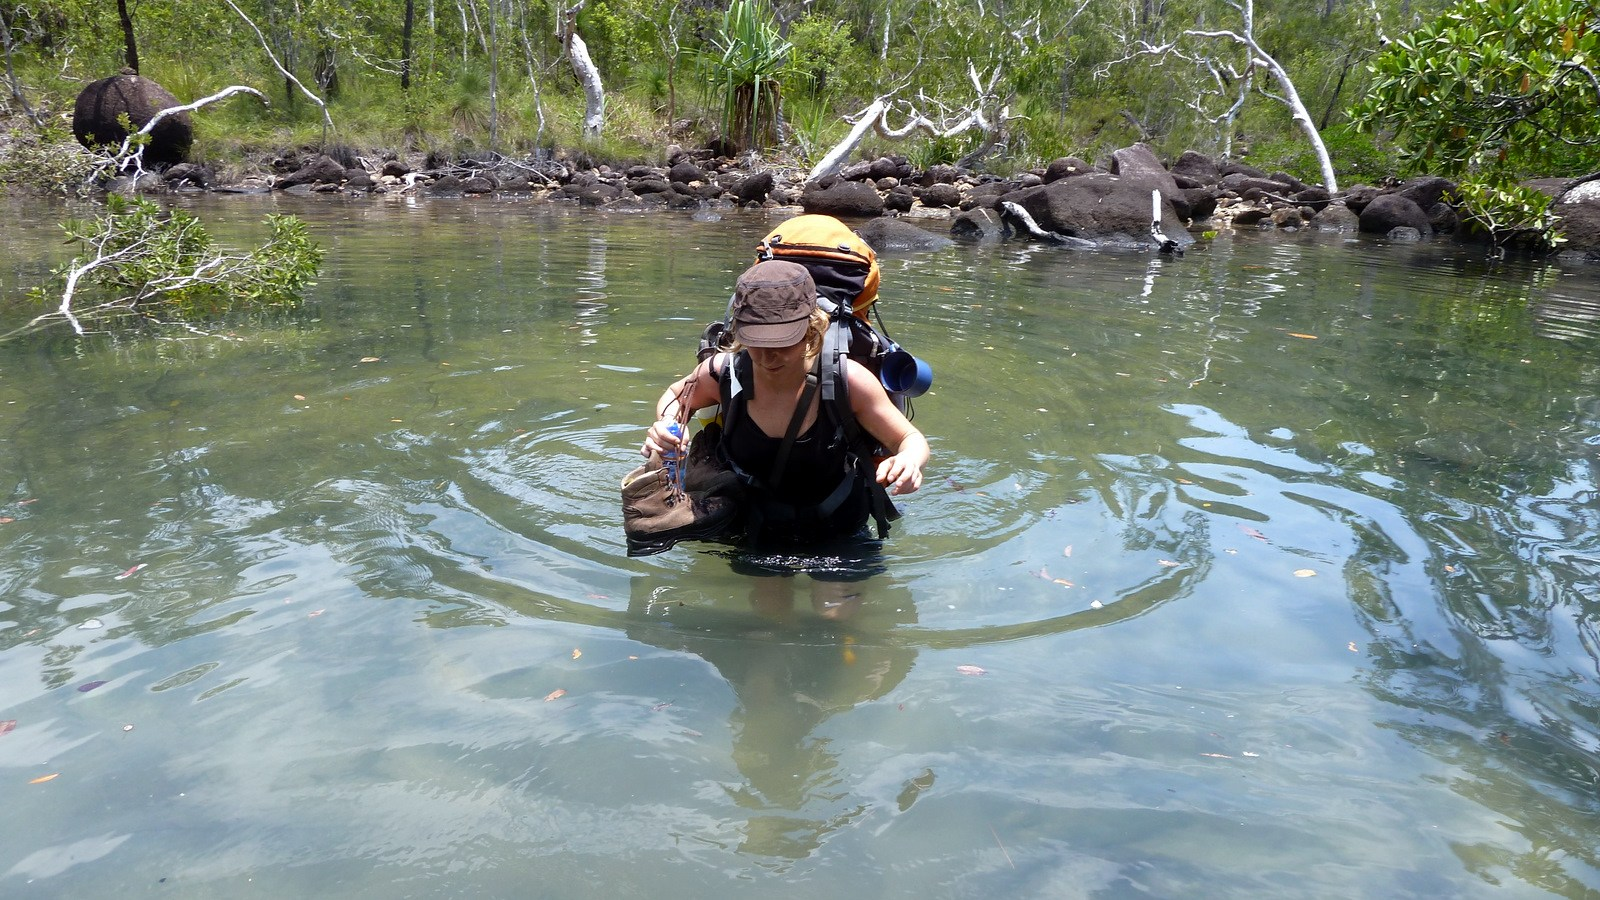 this is a photo of a hiker in Hinchinbrook Island wading through hip deep water